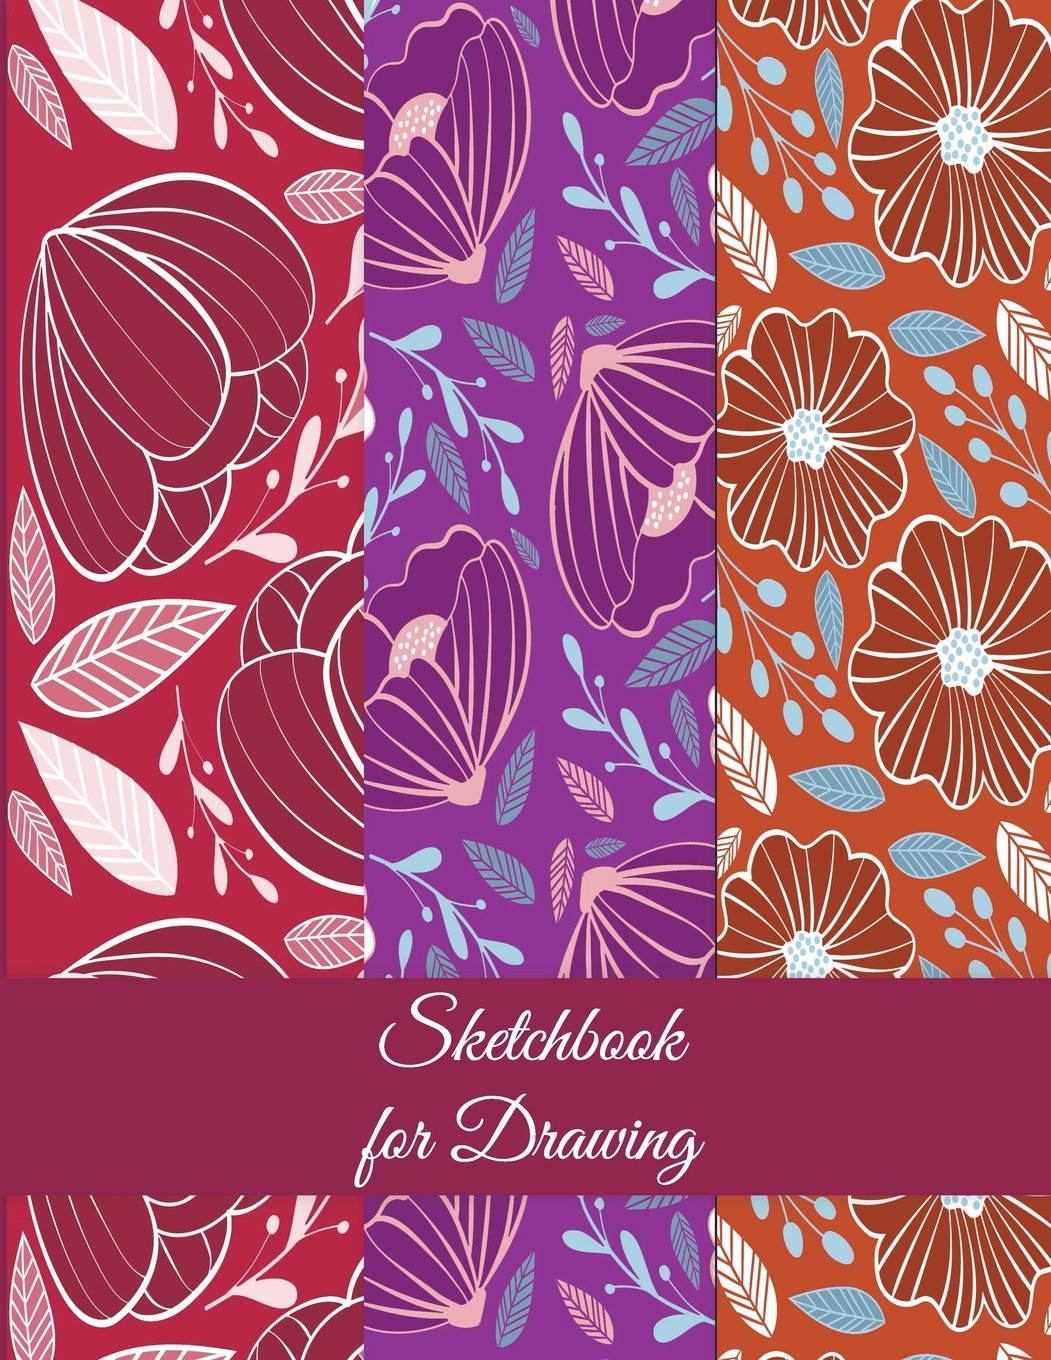 "Read Online Sketchbook for Drawing: Red Color Floral Design, Blank Paper For Drawing And Sketching 120 Pages Large Size 8.5"" x 11"" Artist Sketchbook for Sketching, Journaling, Drawing and Creative Doodling ebook"